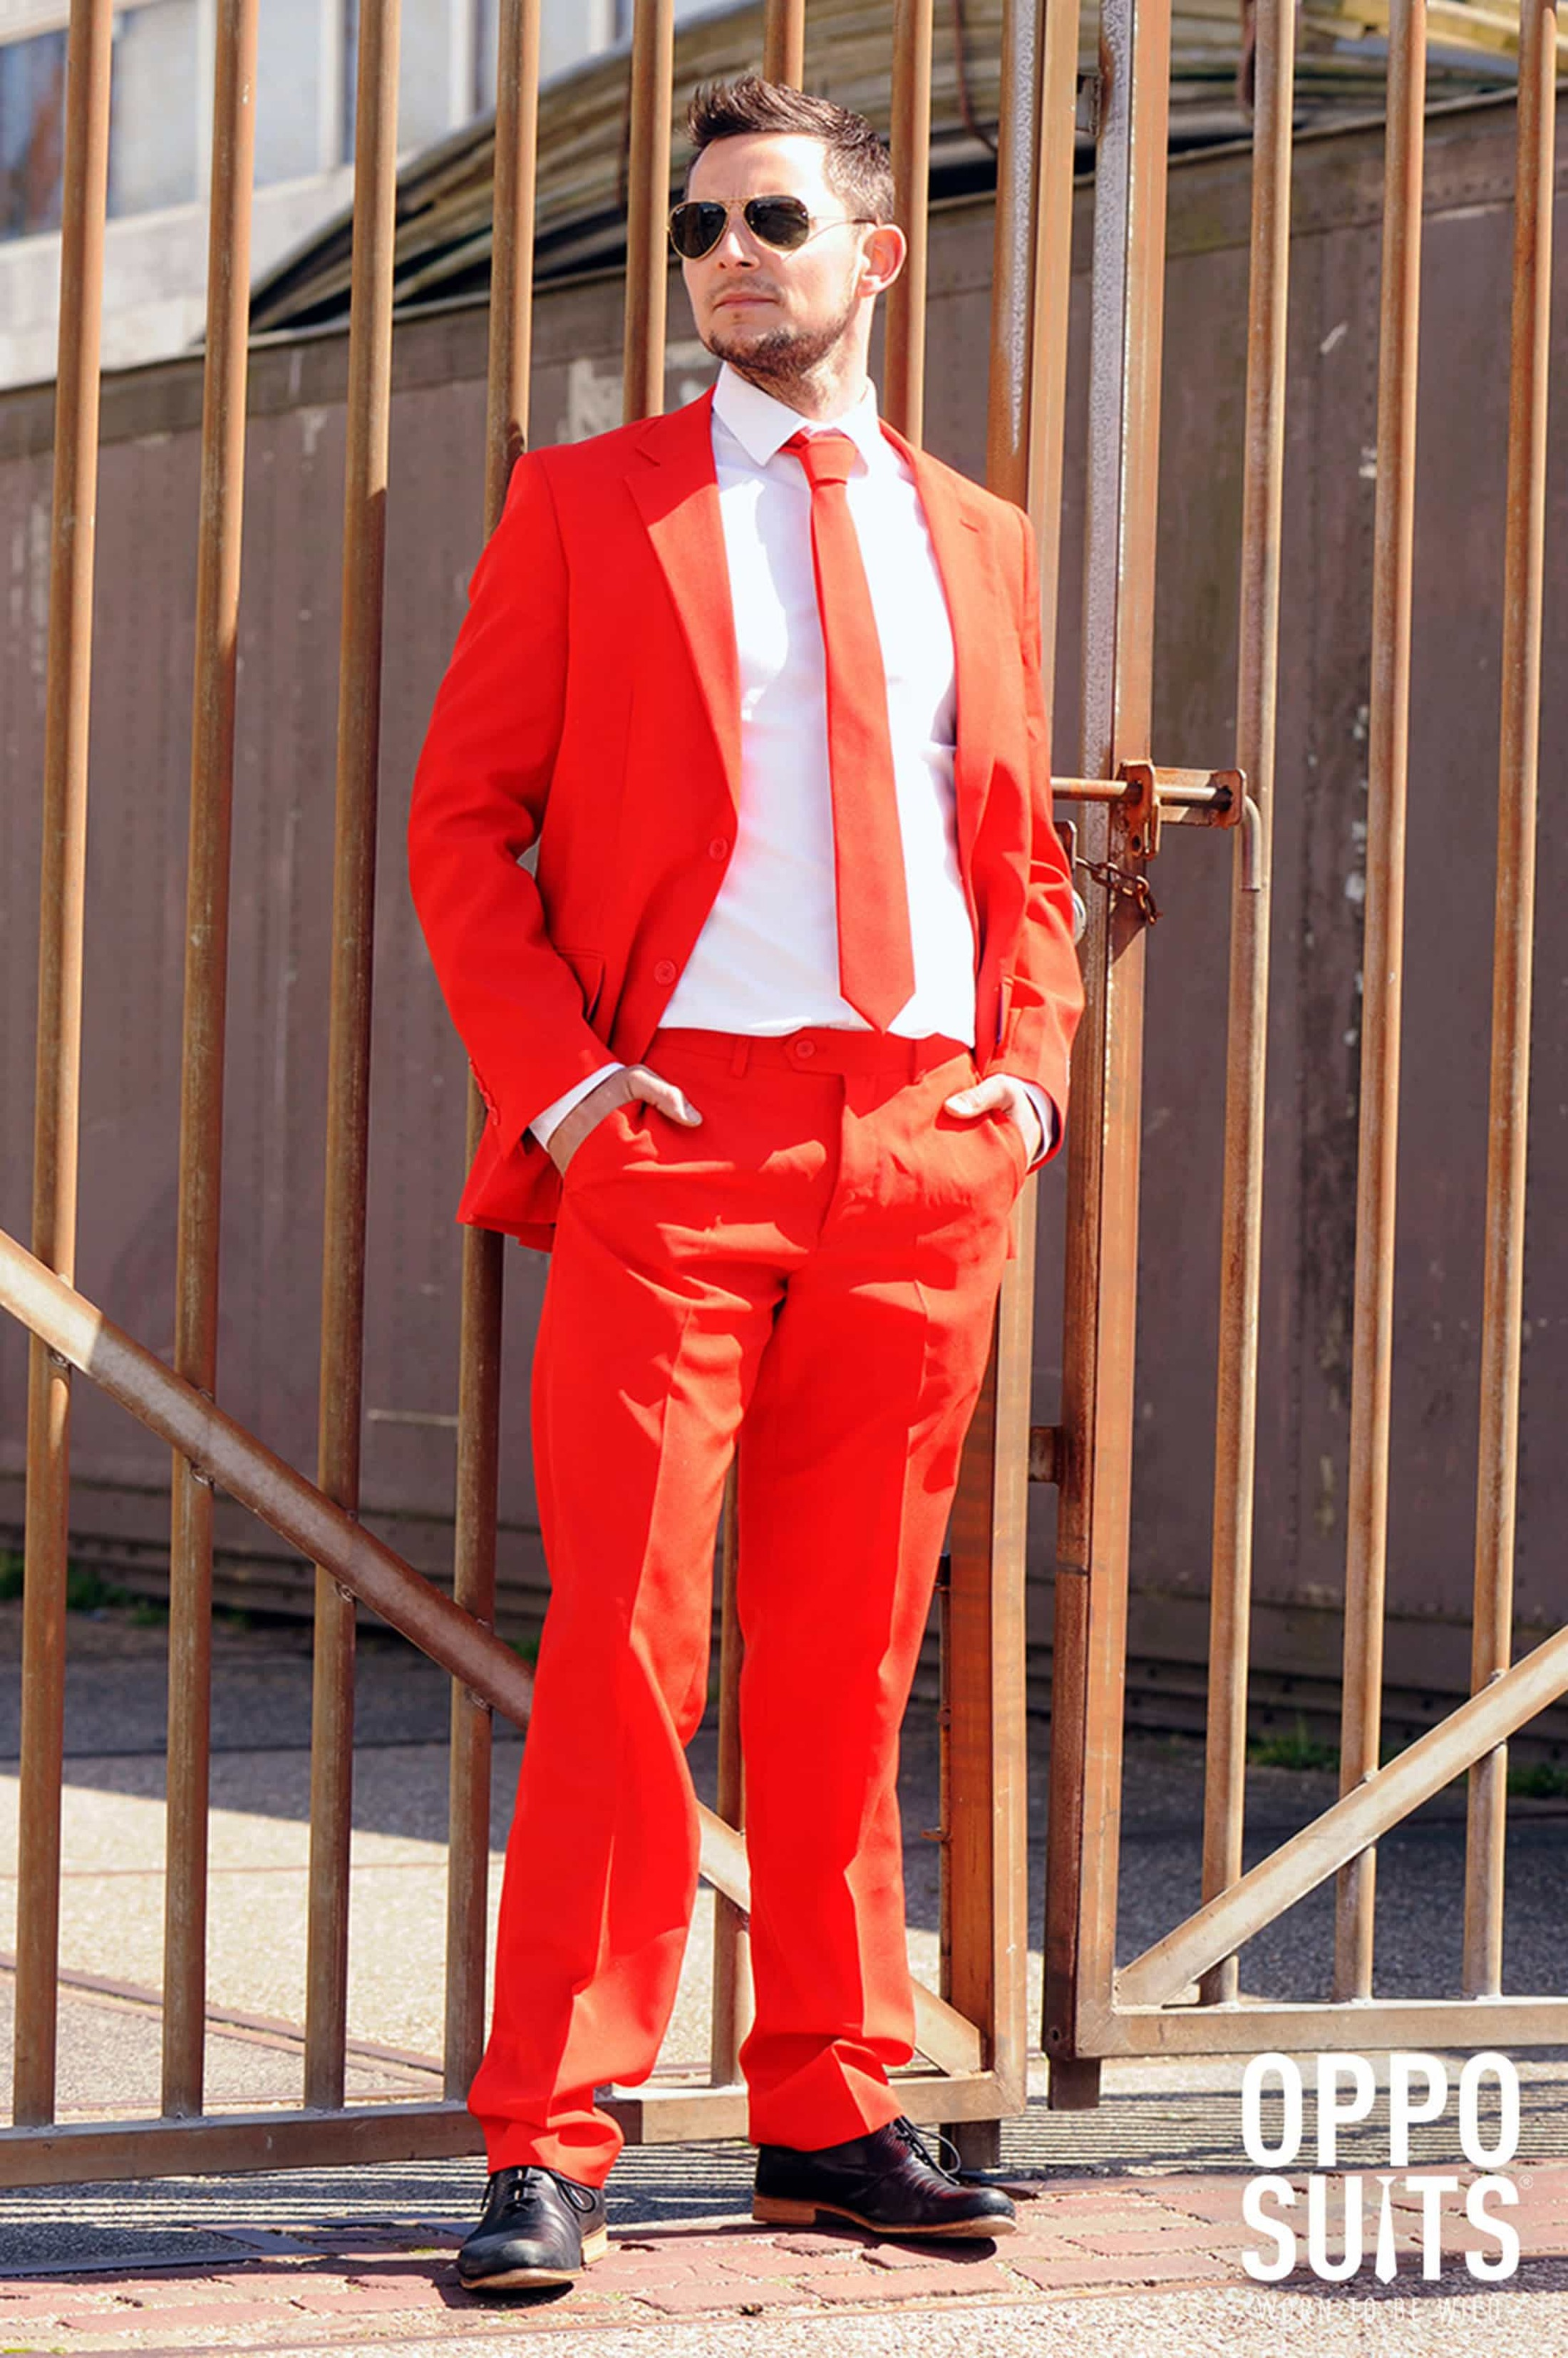 OppoSuits Red Devil Kostüm foto 2